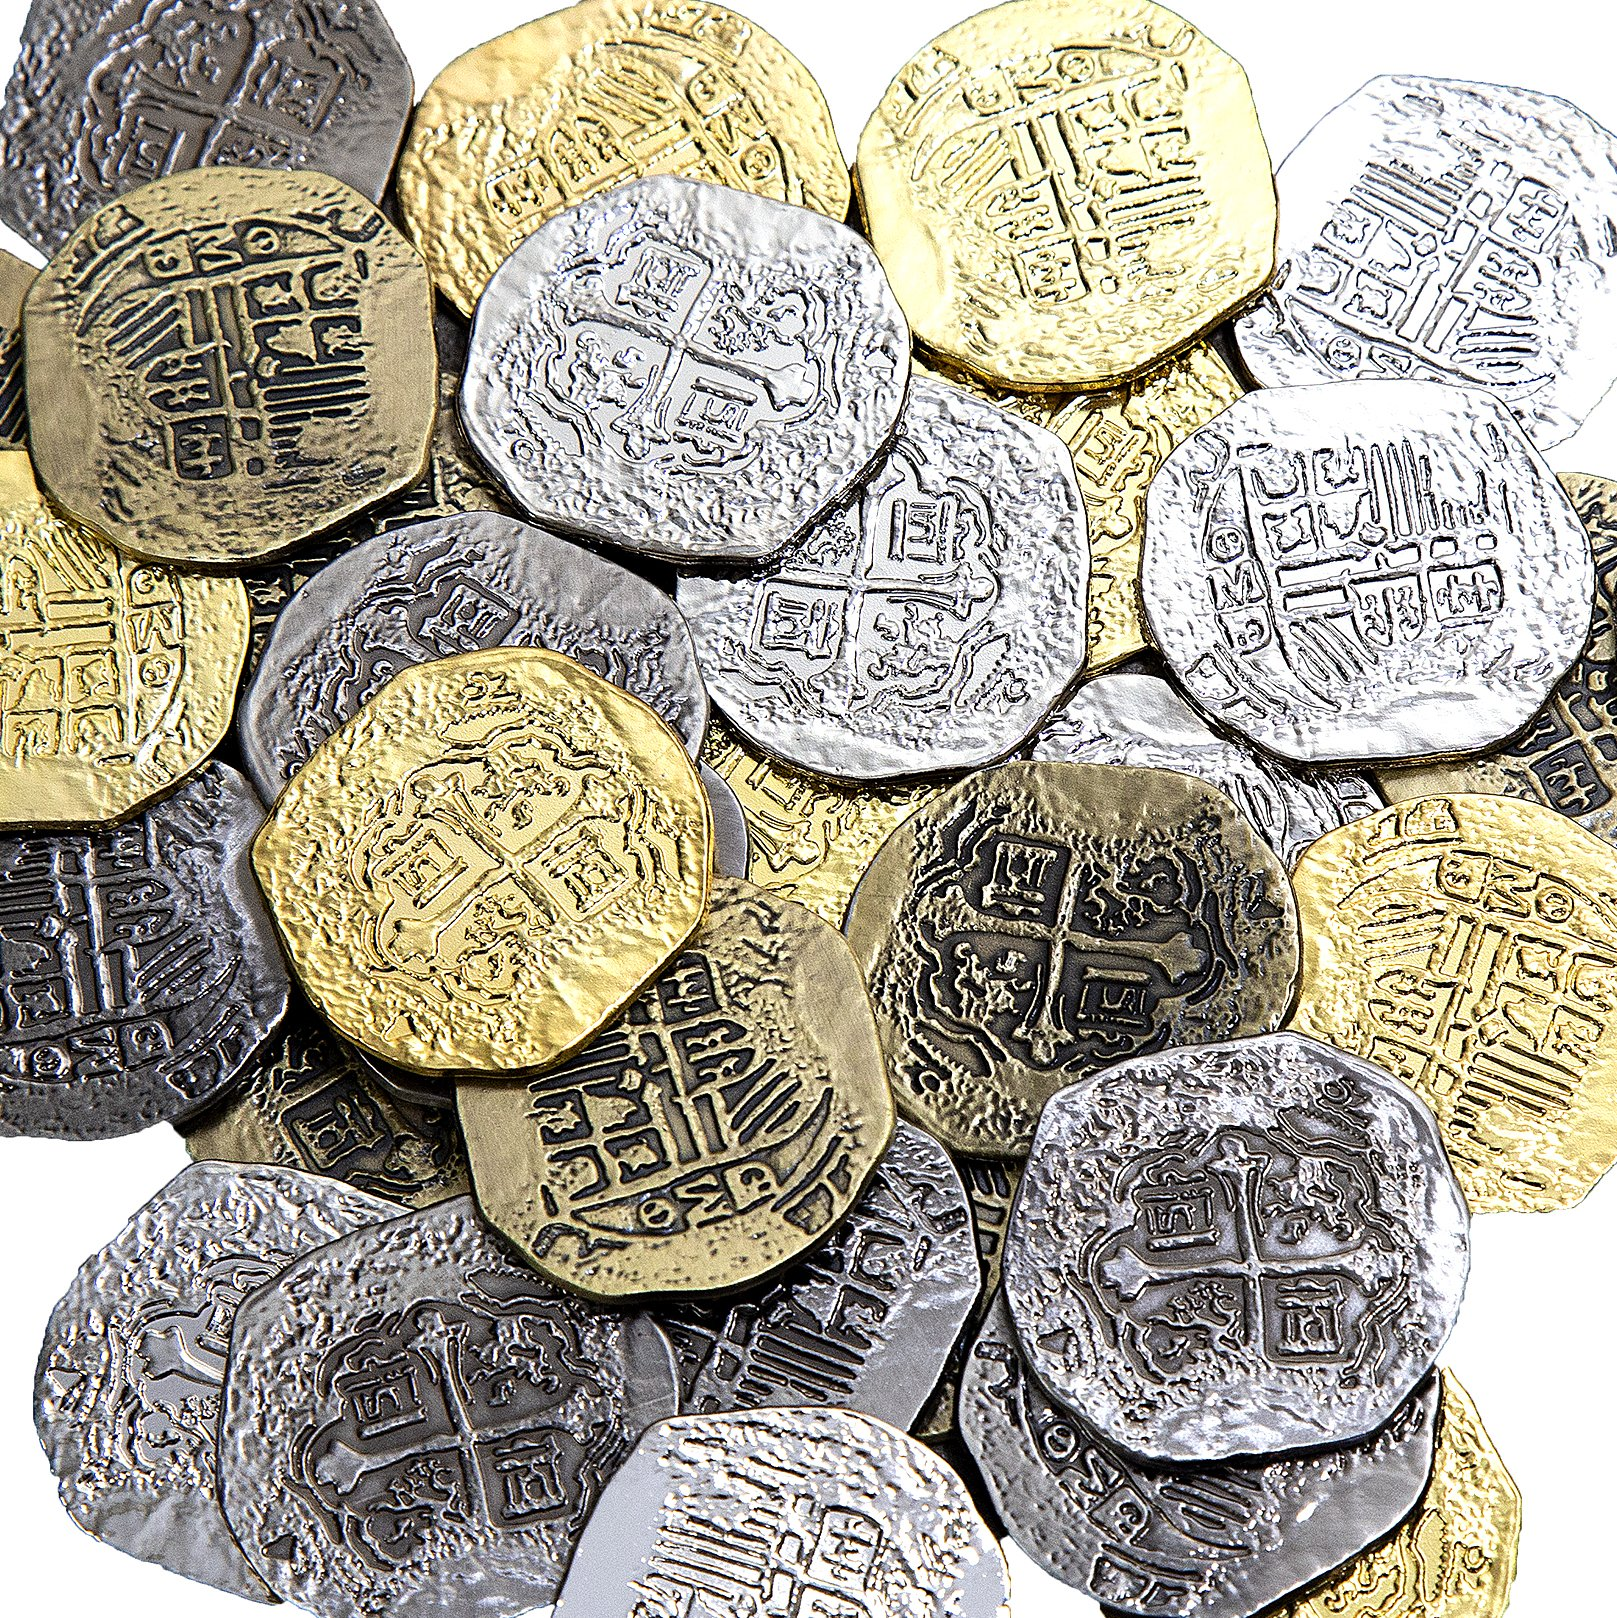 Extra Large Metal Pirate Treasure Coins - 100 Gold and Silver Doubloon Replicas - Toy Pirate Coins by Beverly Oaks (Image #1)